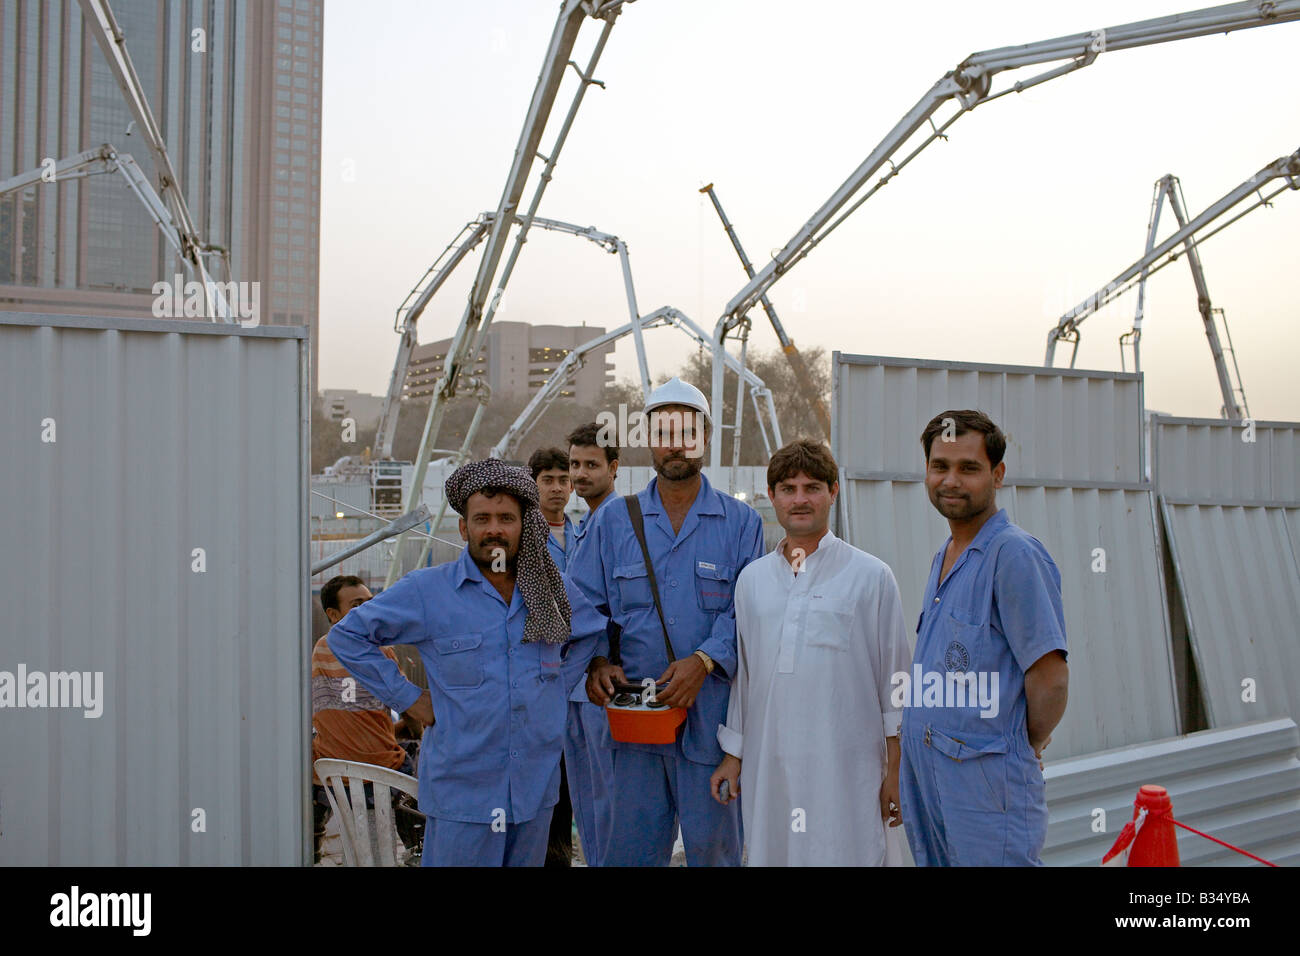 construction workers of Al Durrah Tower Baustellenarbeiter am Al Durrah Tower Stock Photo